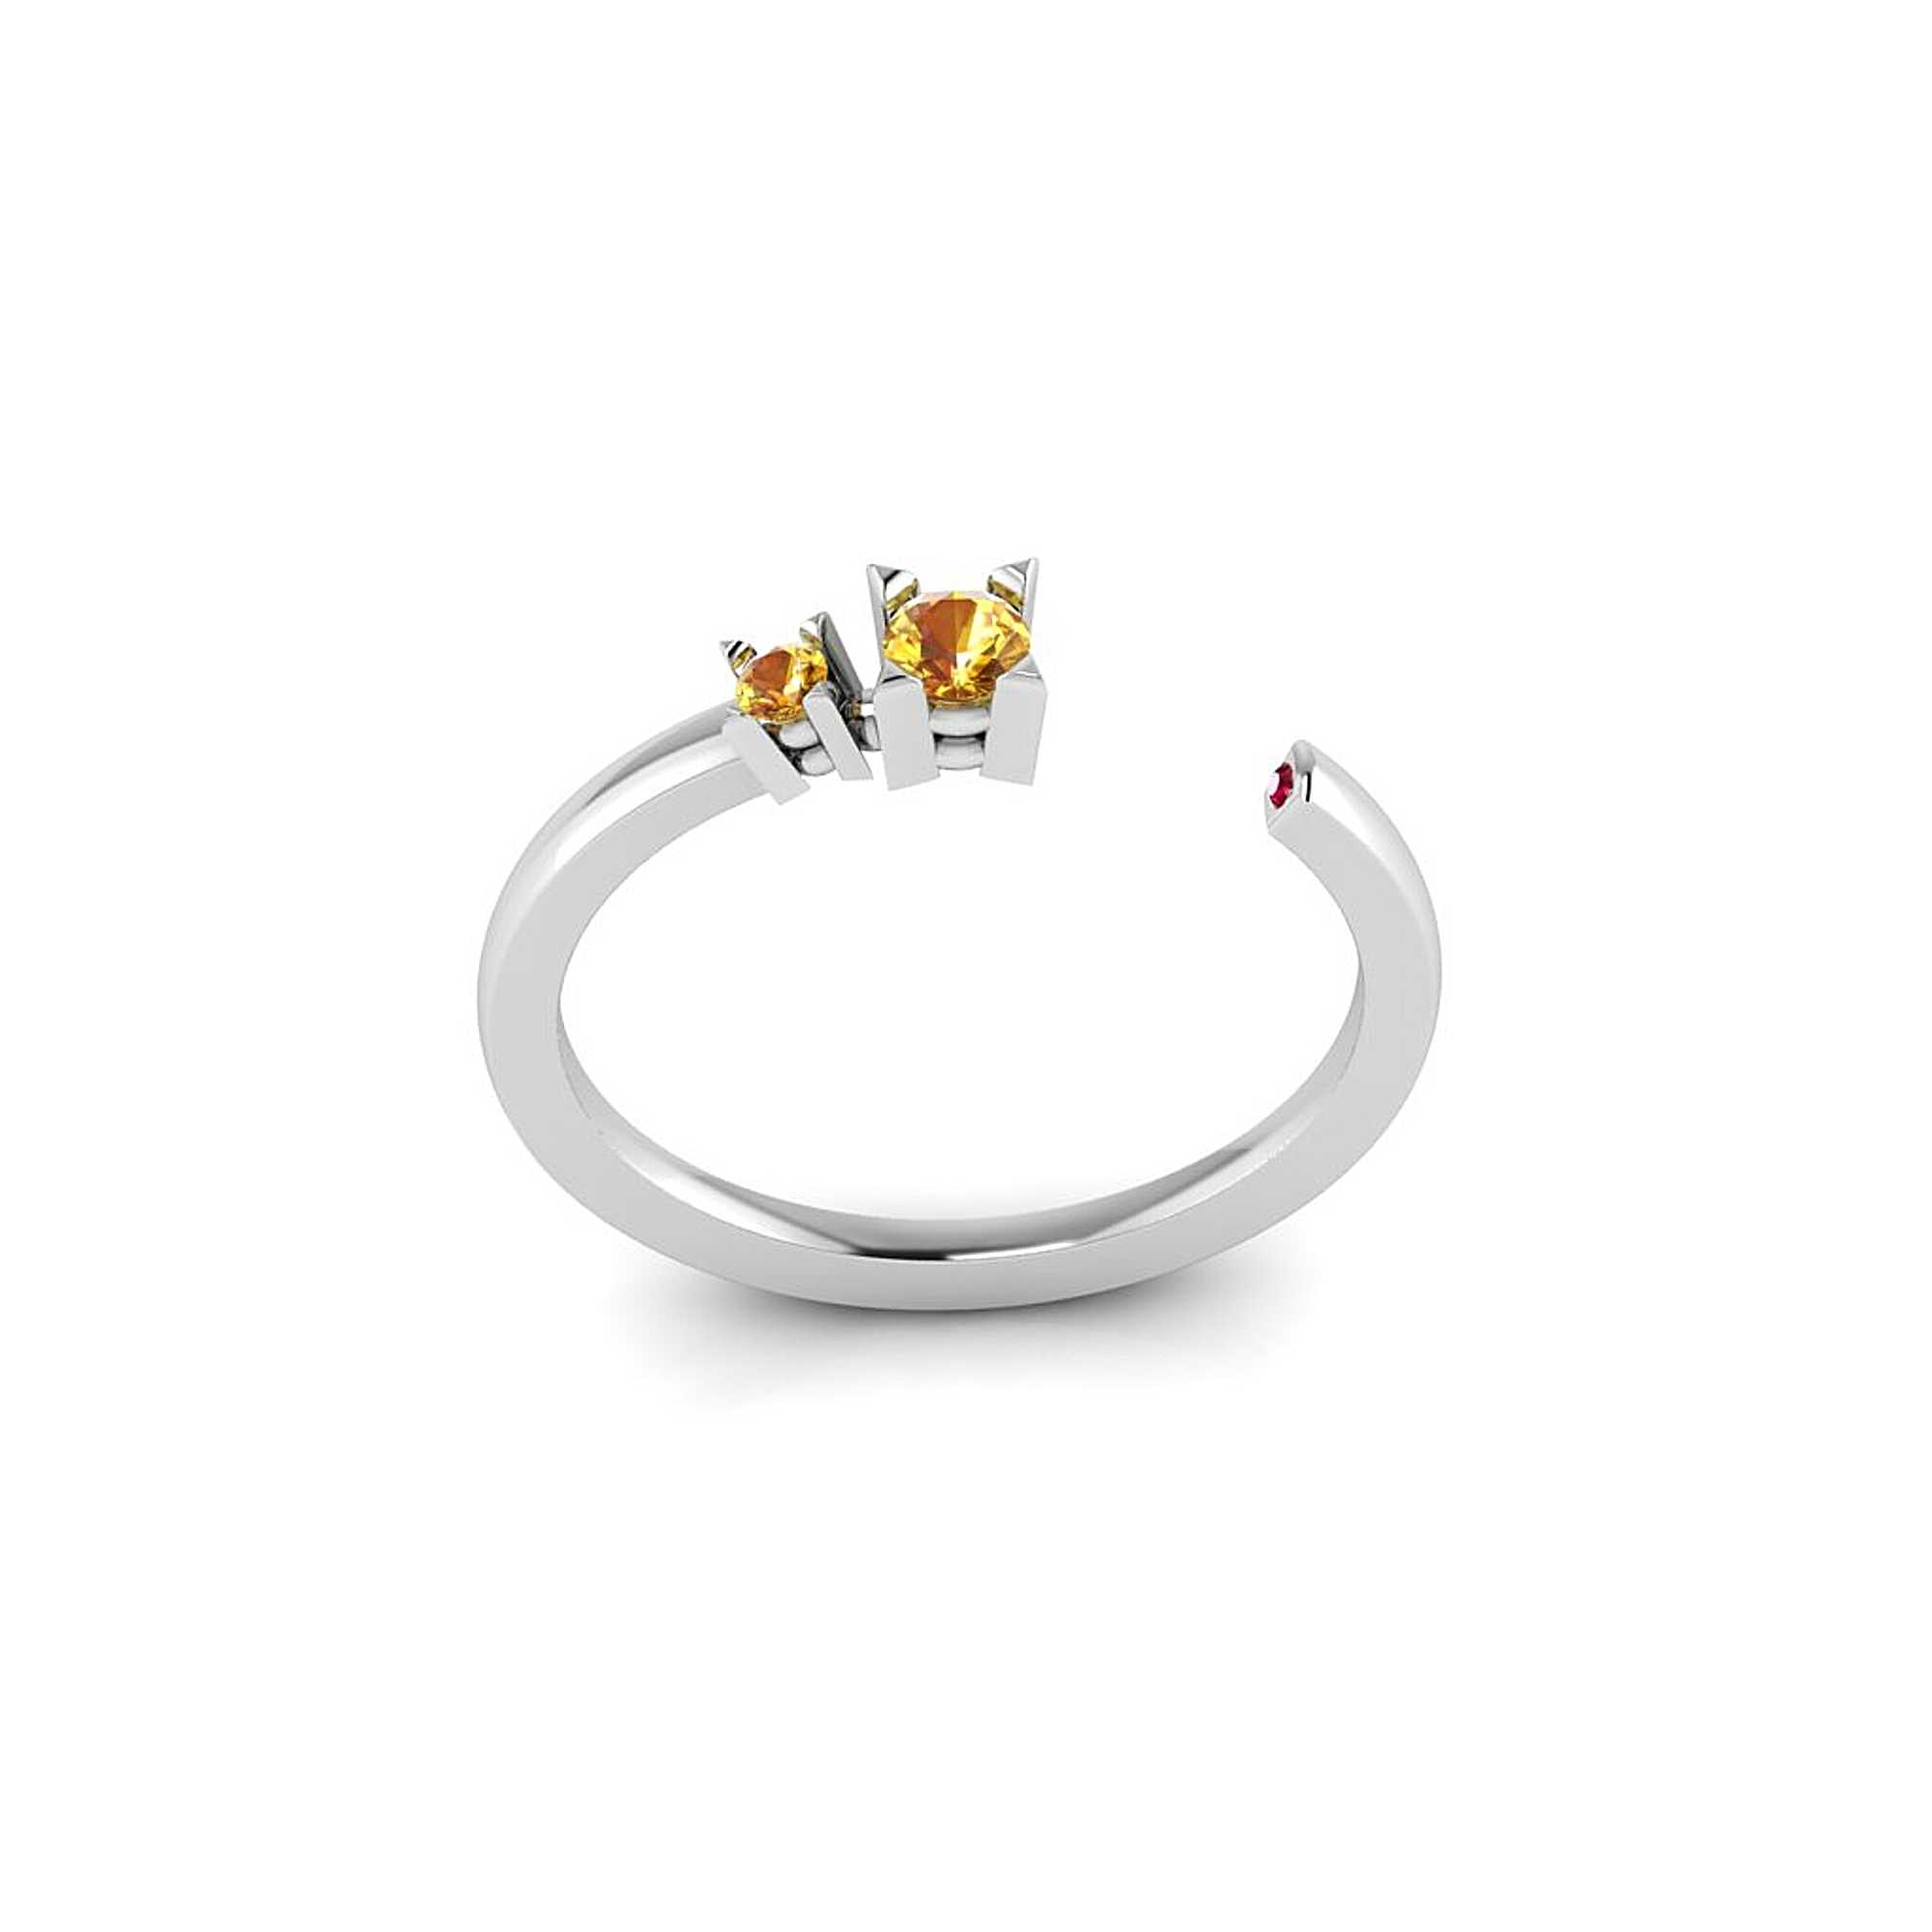 Bocabella Ring